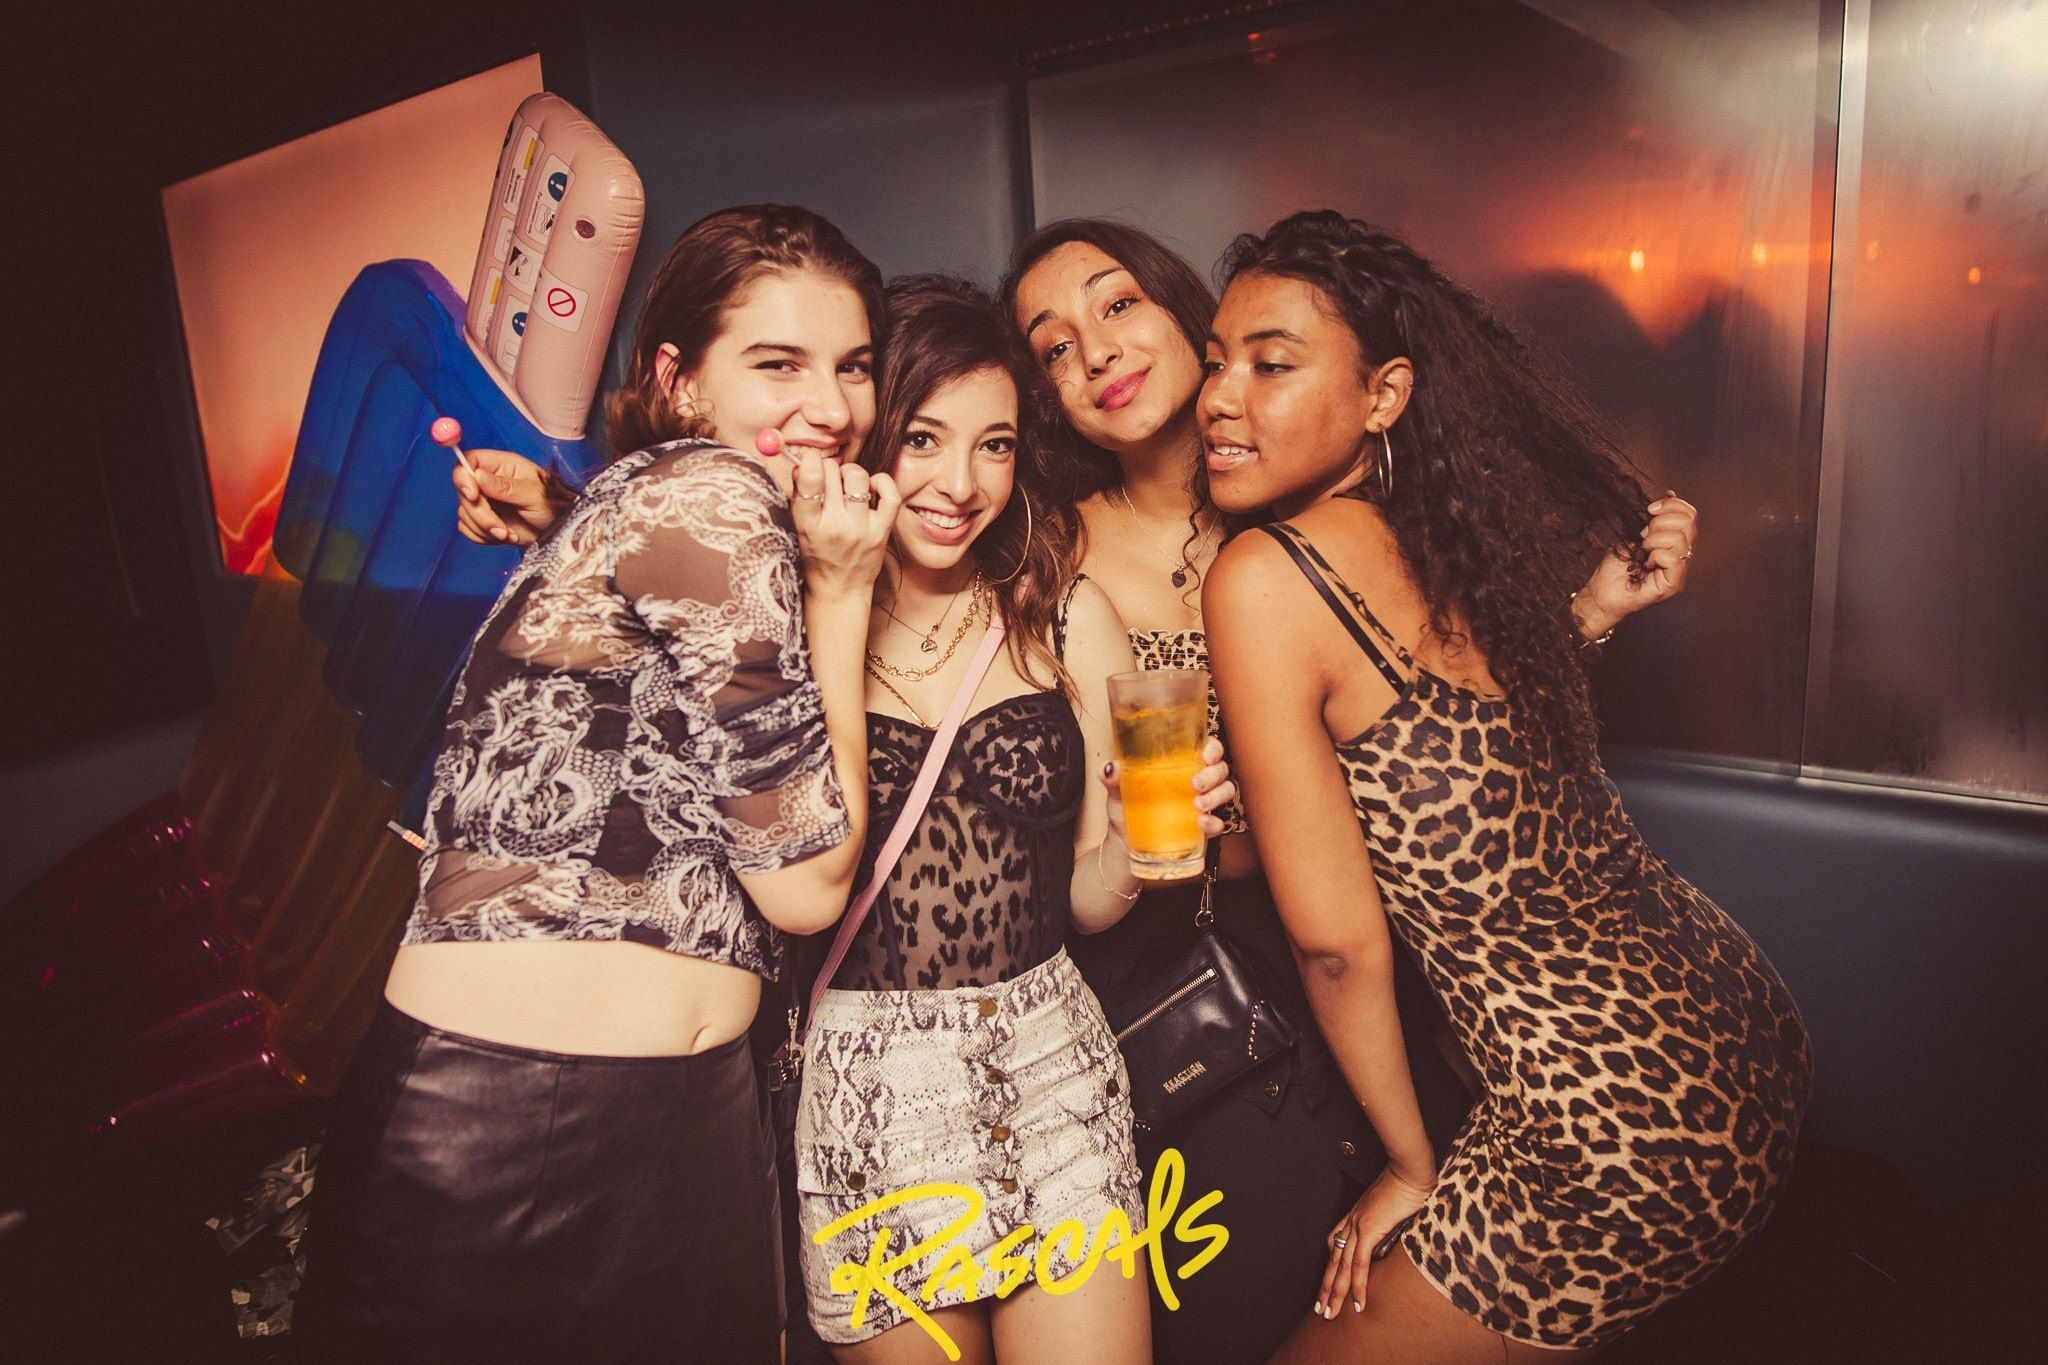 Image may contain: Night Life, Beer, Beverage, Drink, Alcohol, Party, Night Club, Club, Person, Human